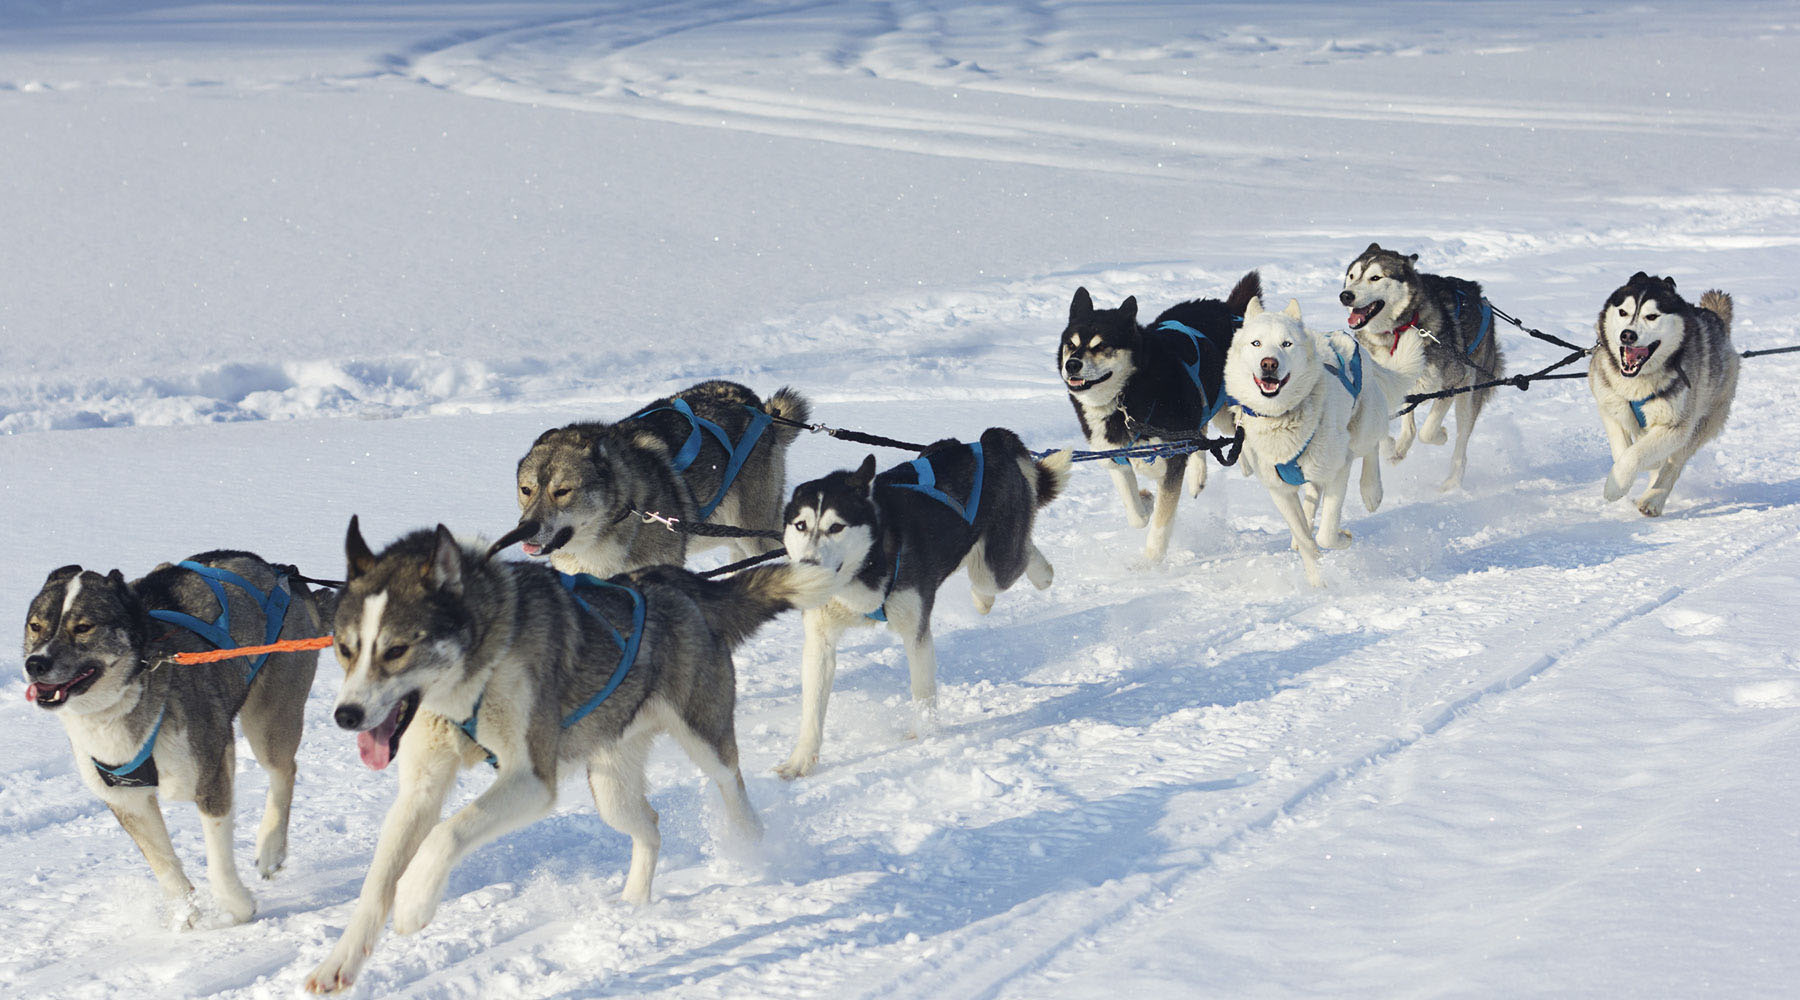 A pack of husky dogs racing across the snow in Alaska.